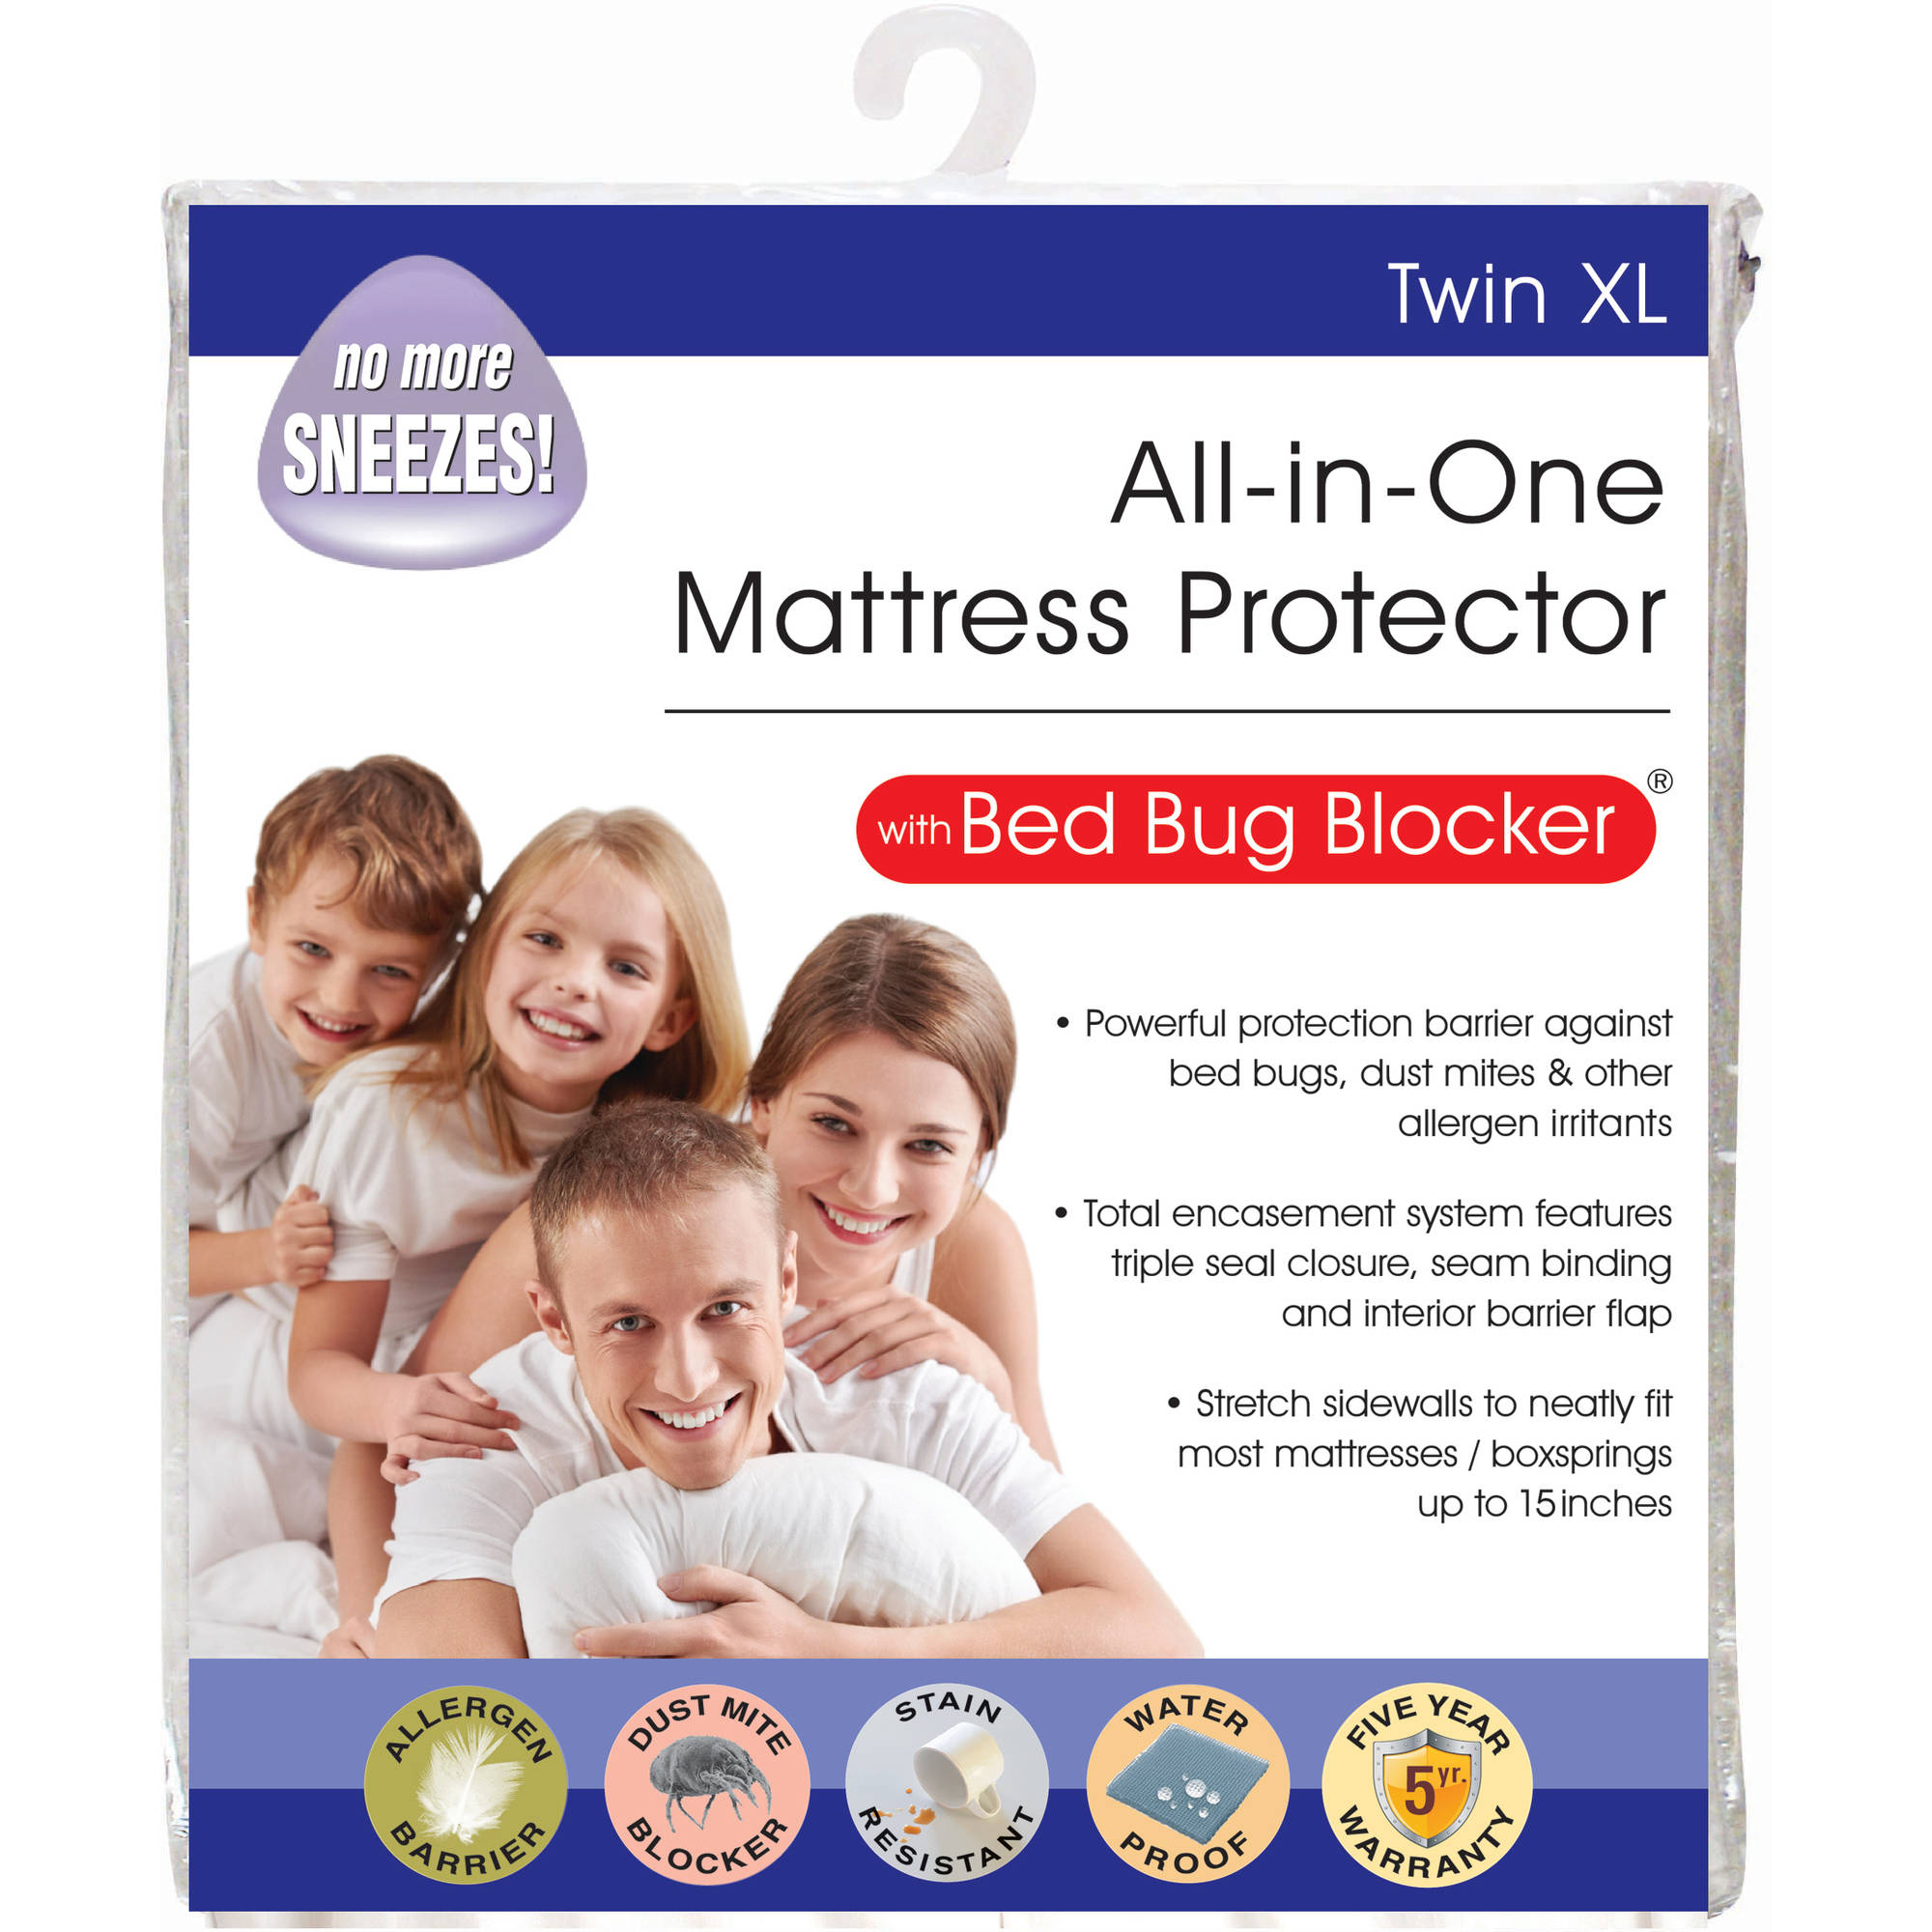 All-in-1 Bed Bug Blocker Mattress Protector, Twin XL by Levinsohn Textile Company